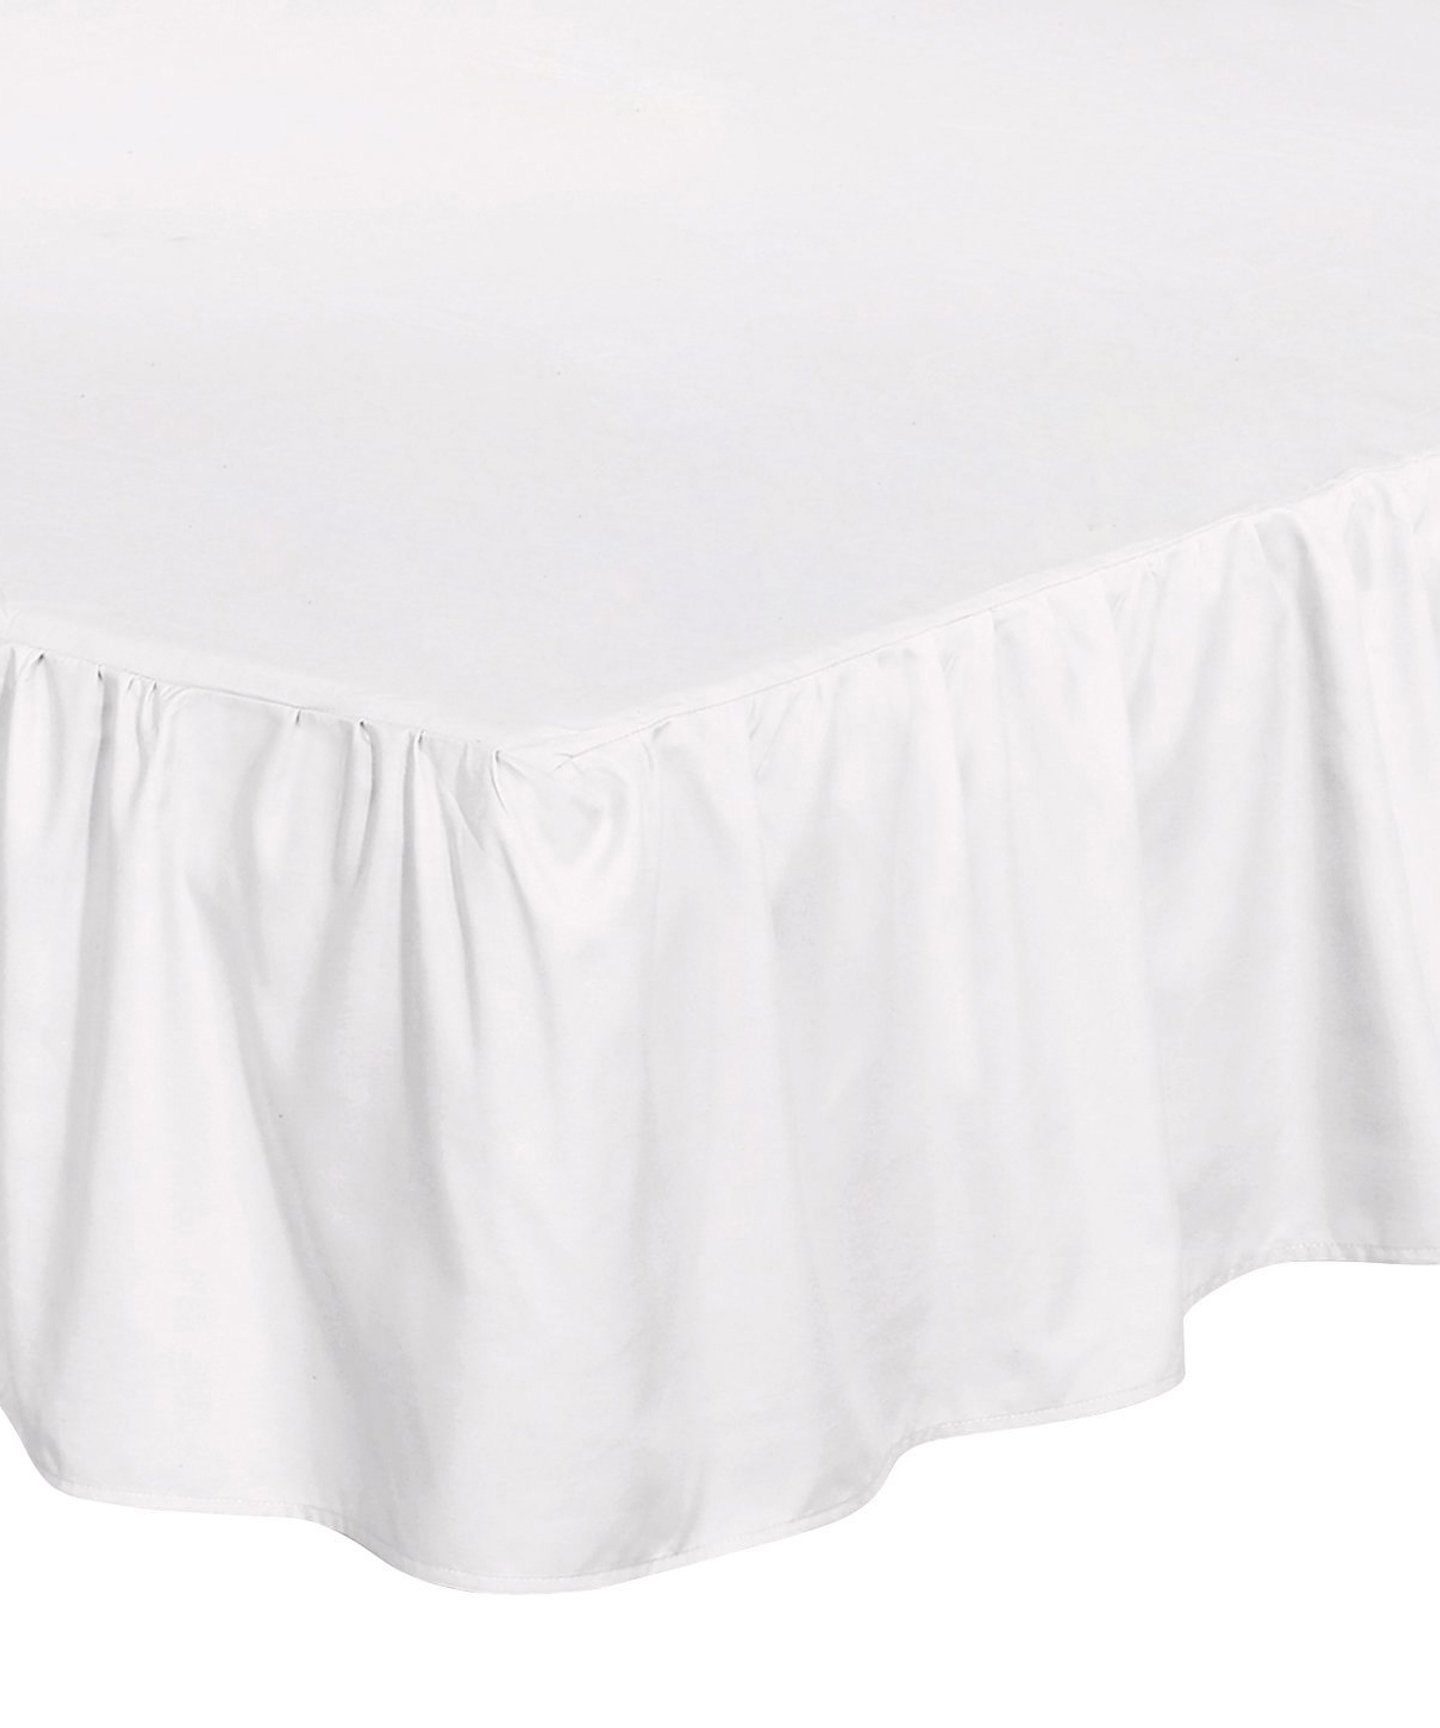 Utopia Bedding Bed Ruffle Skirt (Queen - White) - Brushed Microfiber Bed Wrap with Platform - Easy Fit - Gathered Style - 3 Sided Coverage by Utopia Bedding